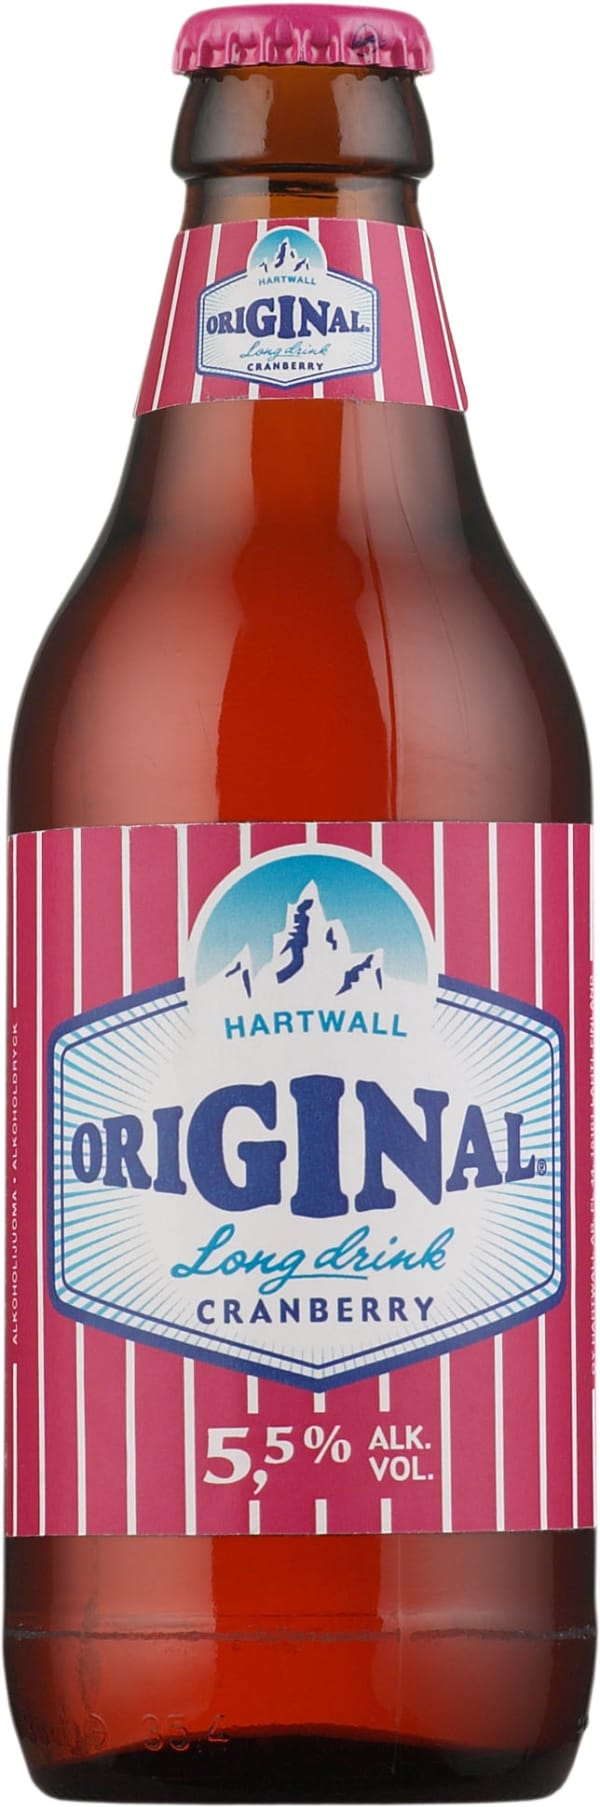 Original Long Drink Cranberry